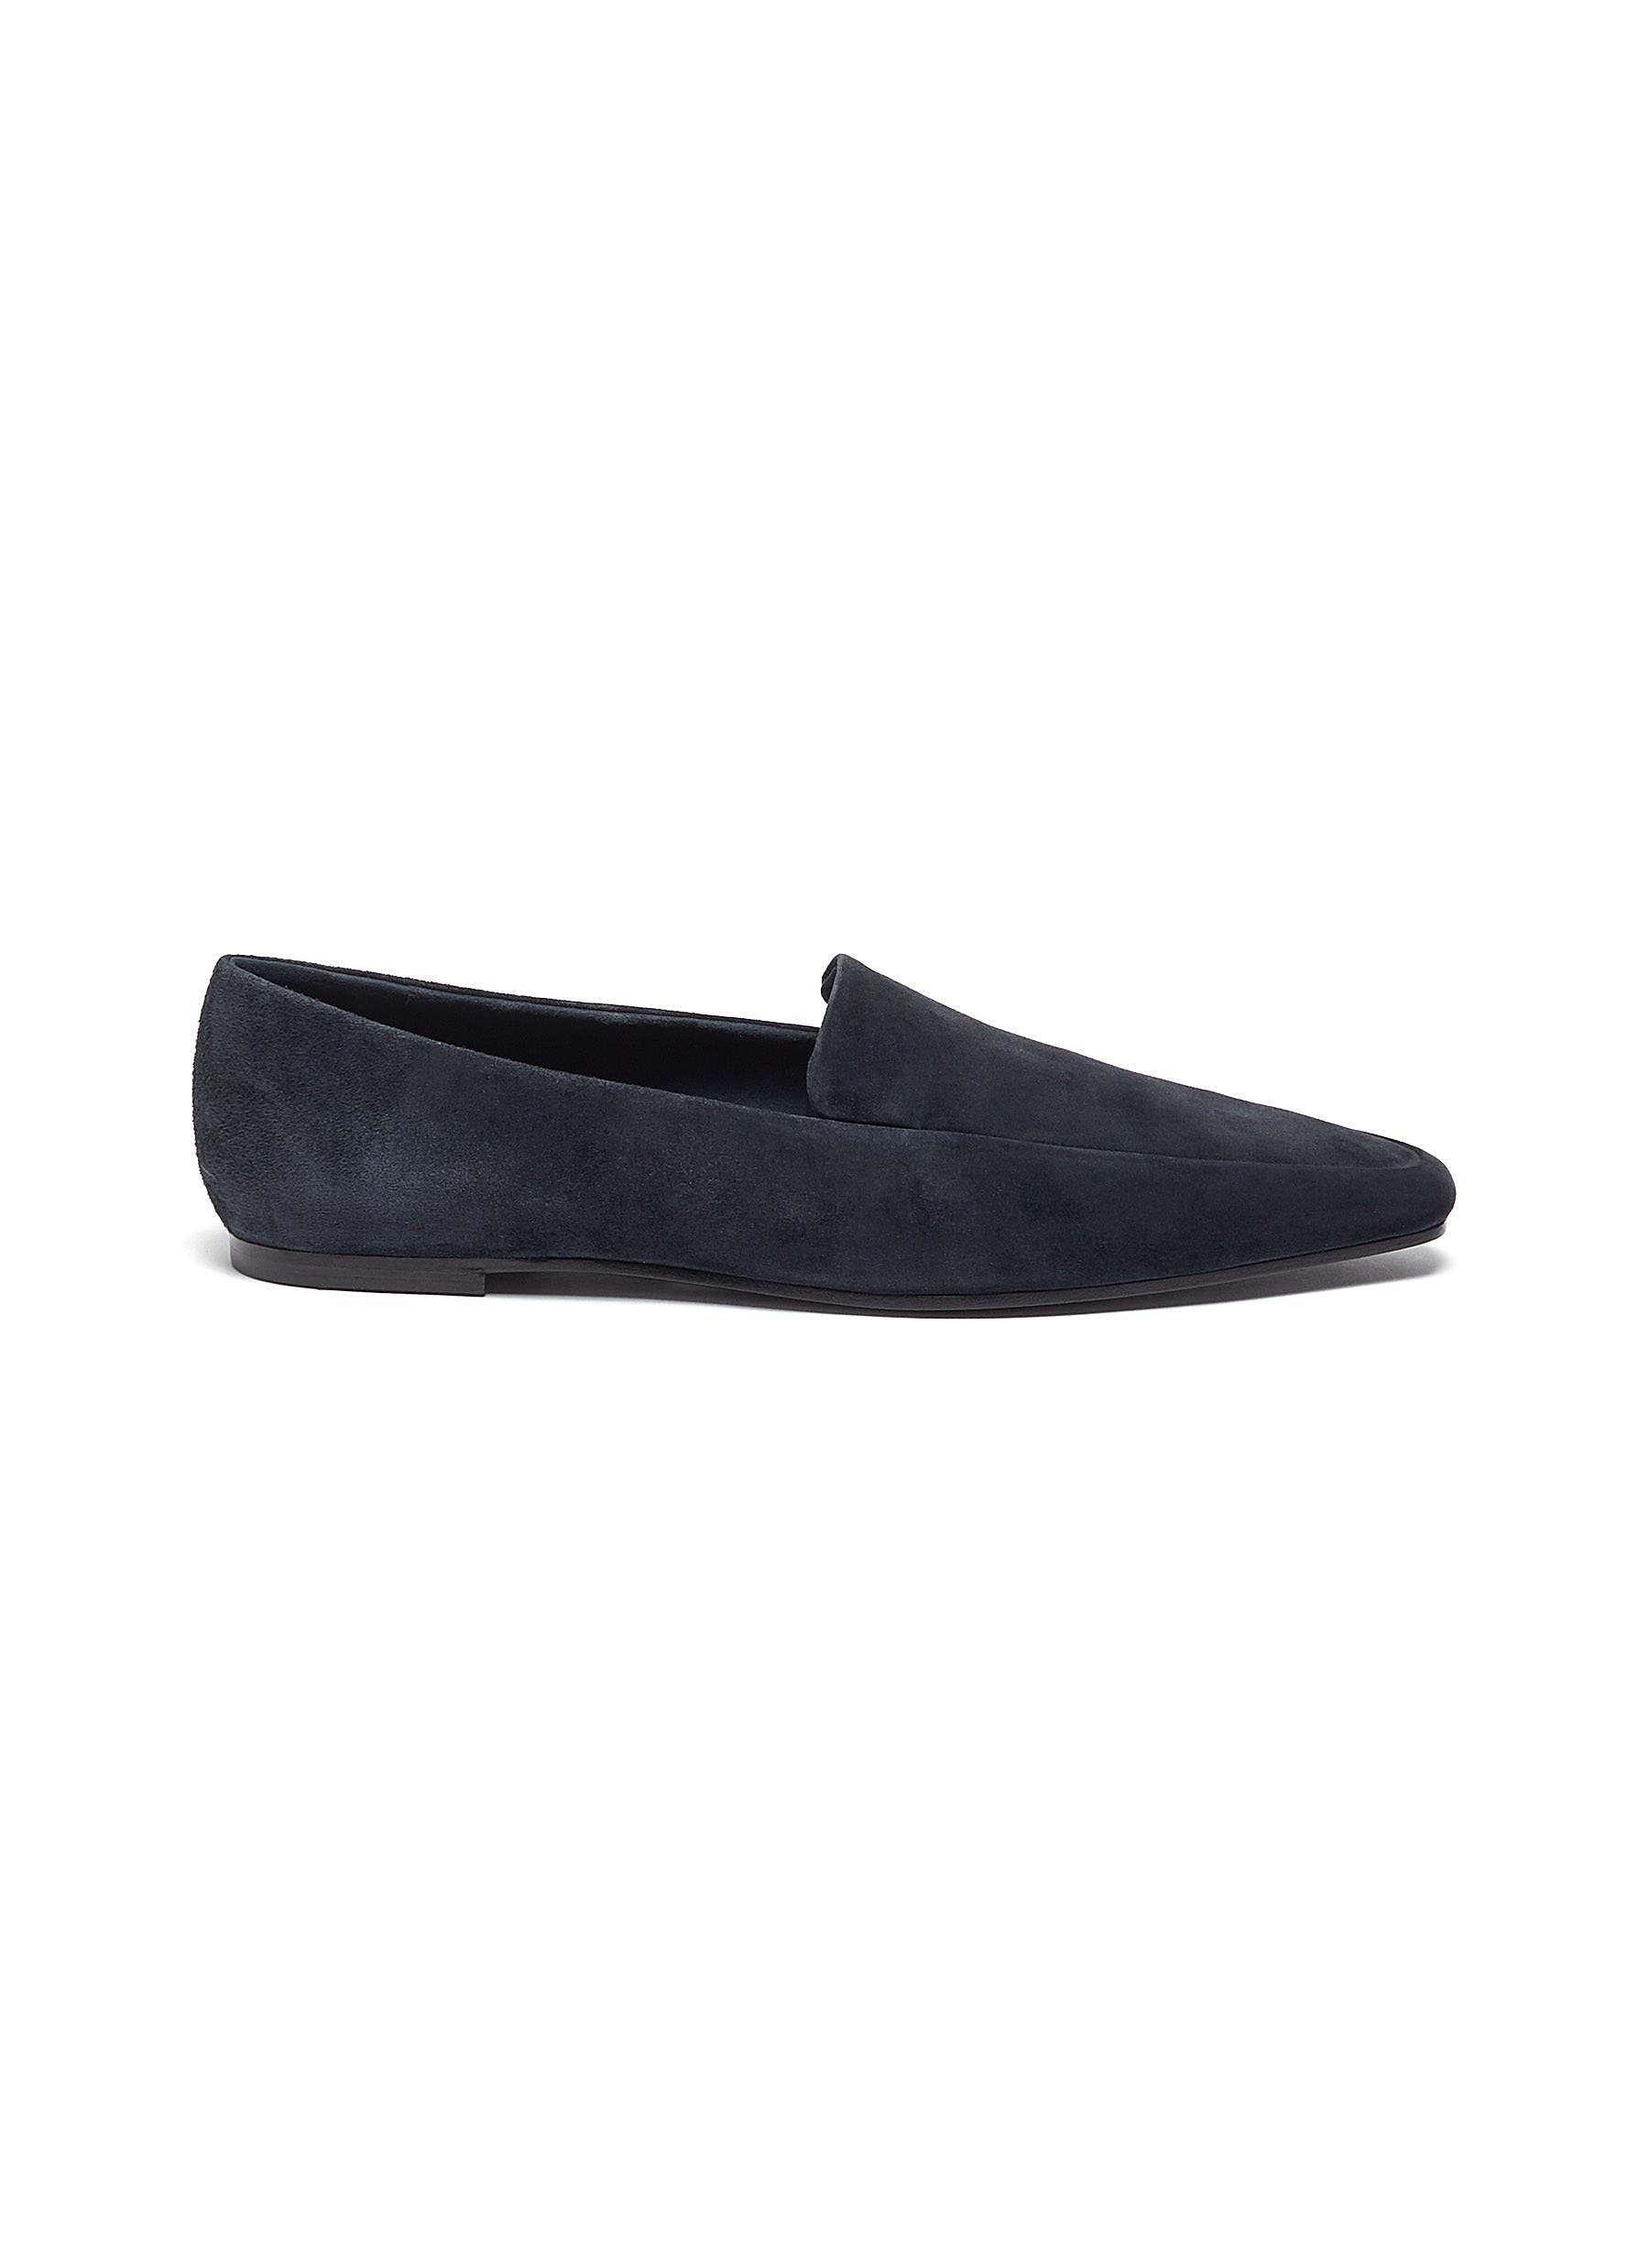 Suede loafers by The Row